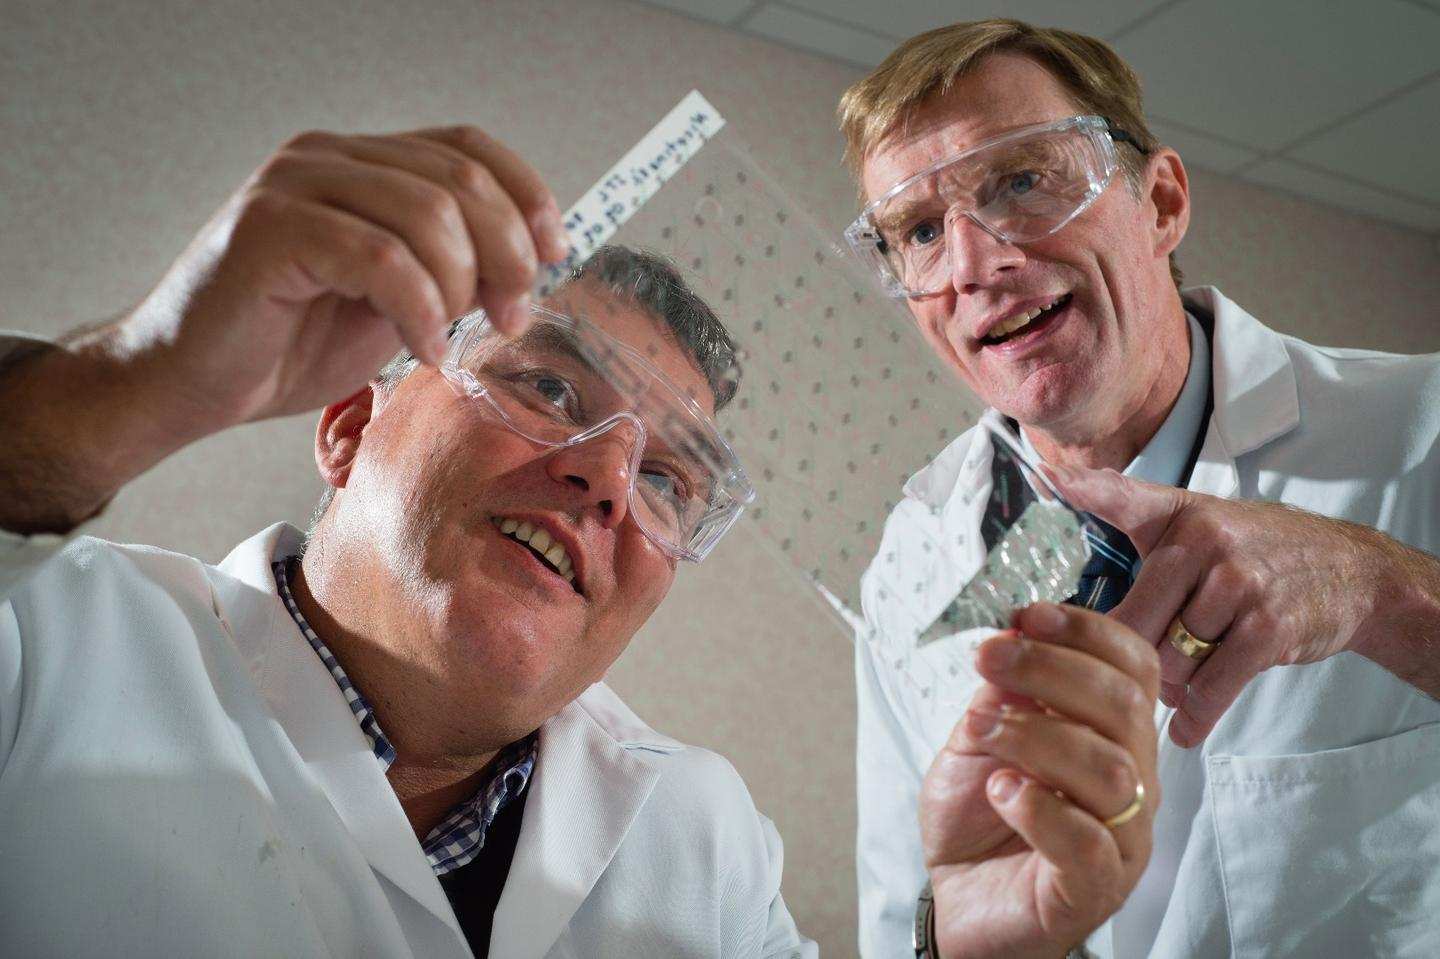 University of Warwick research chemist Prof. David Haddleton (left) and Medherant CEO Nigel Davis, with a sheet of the patch material